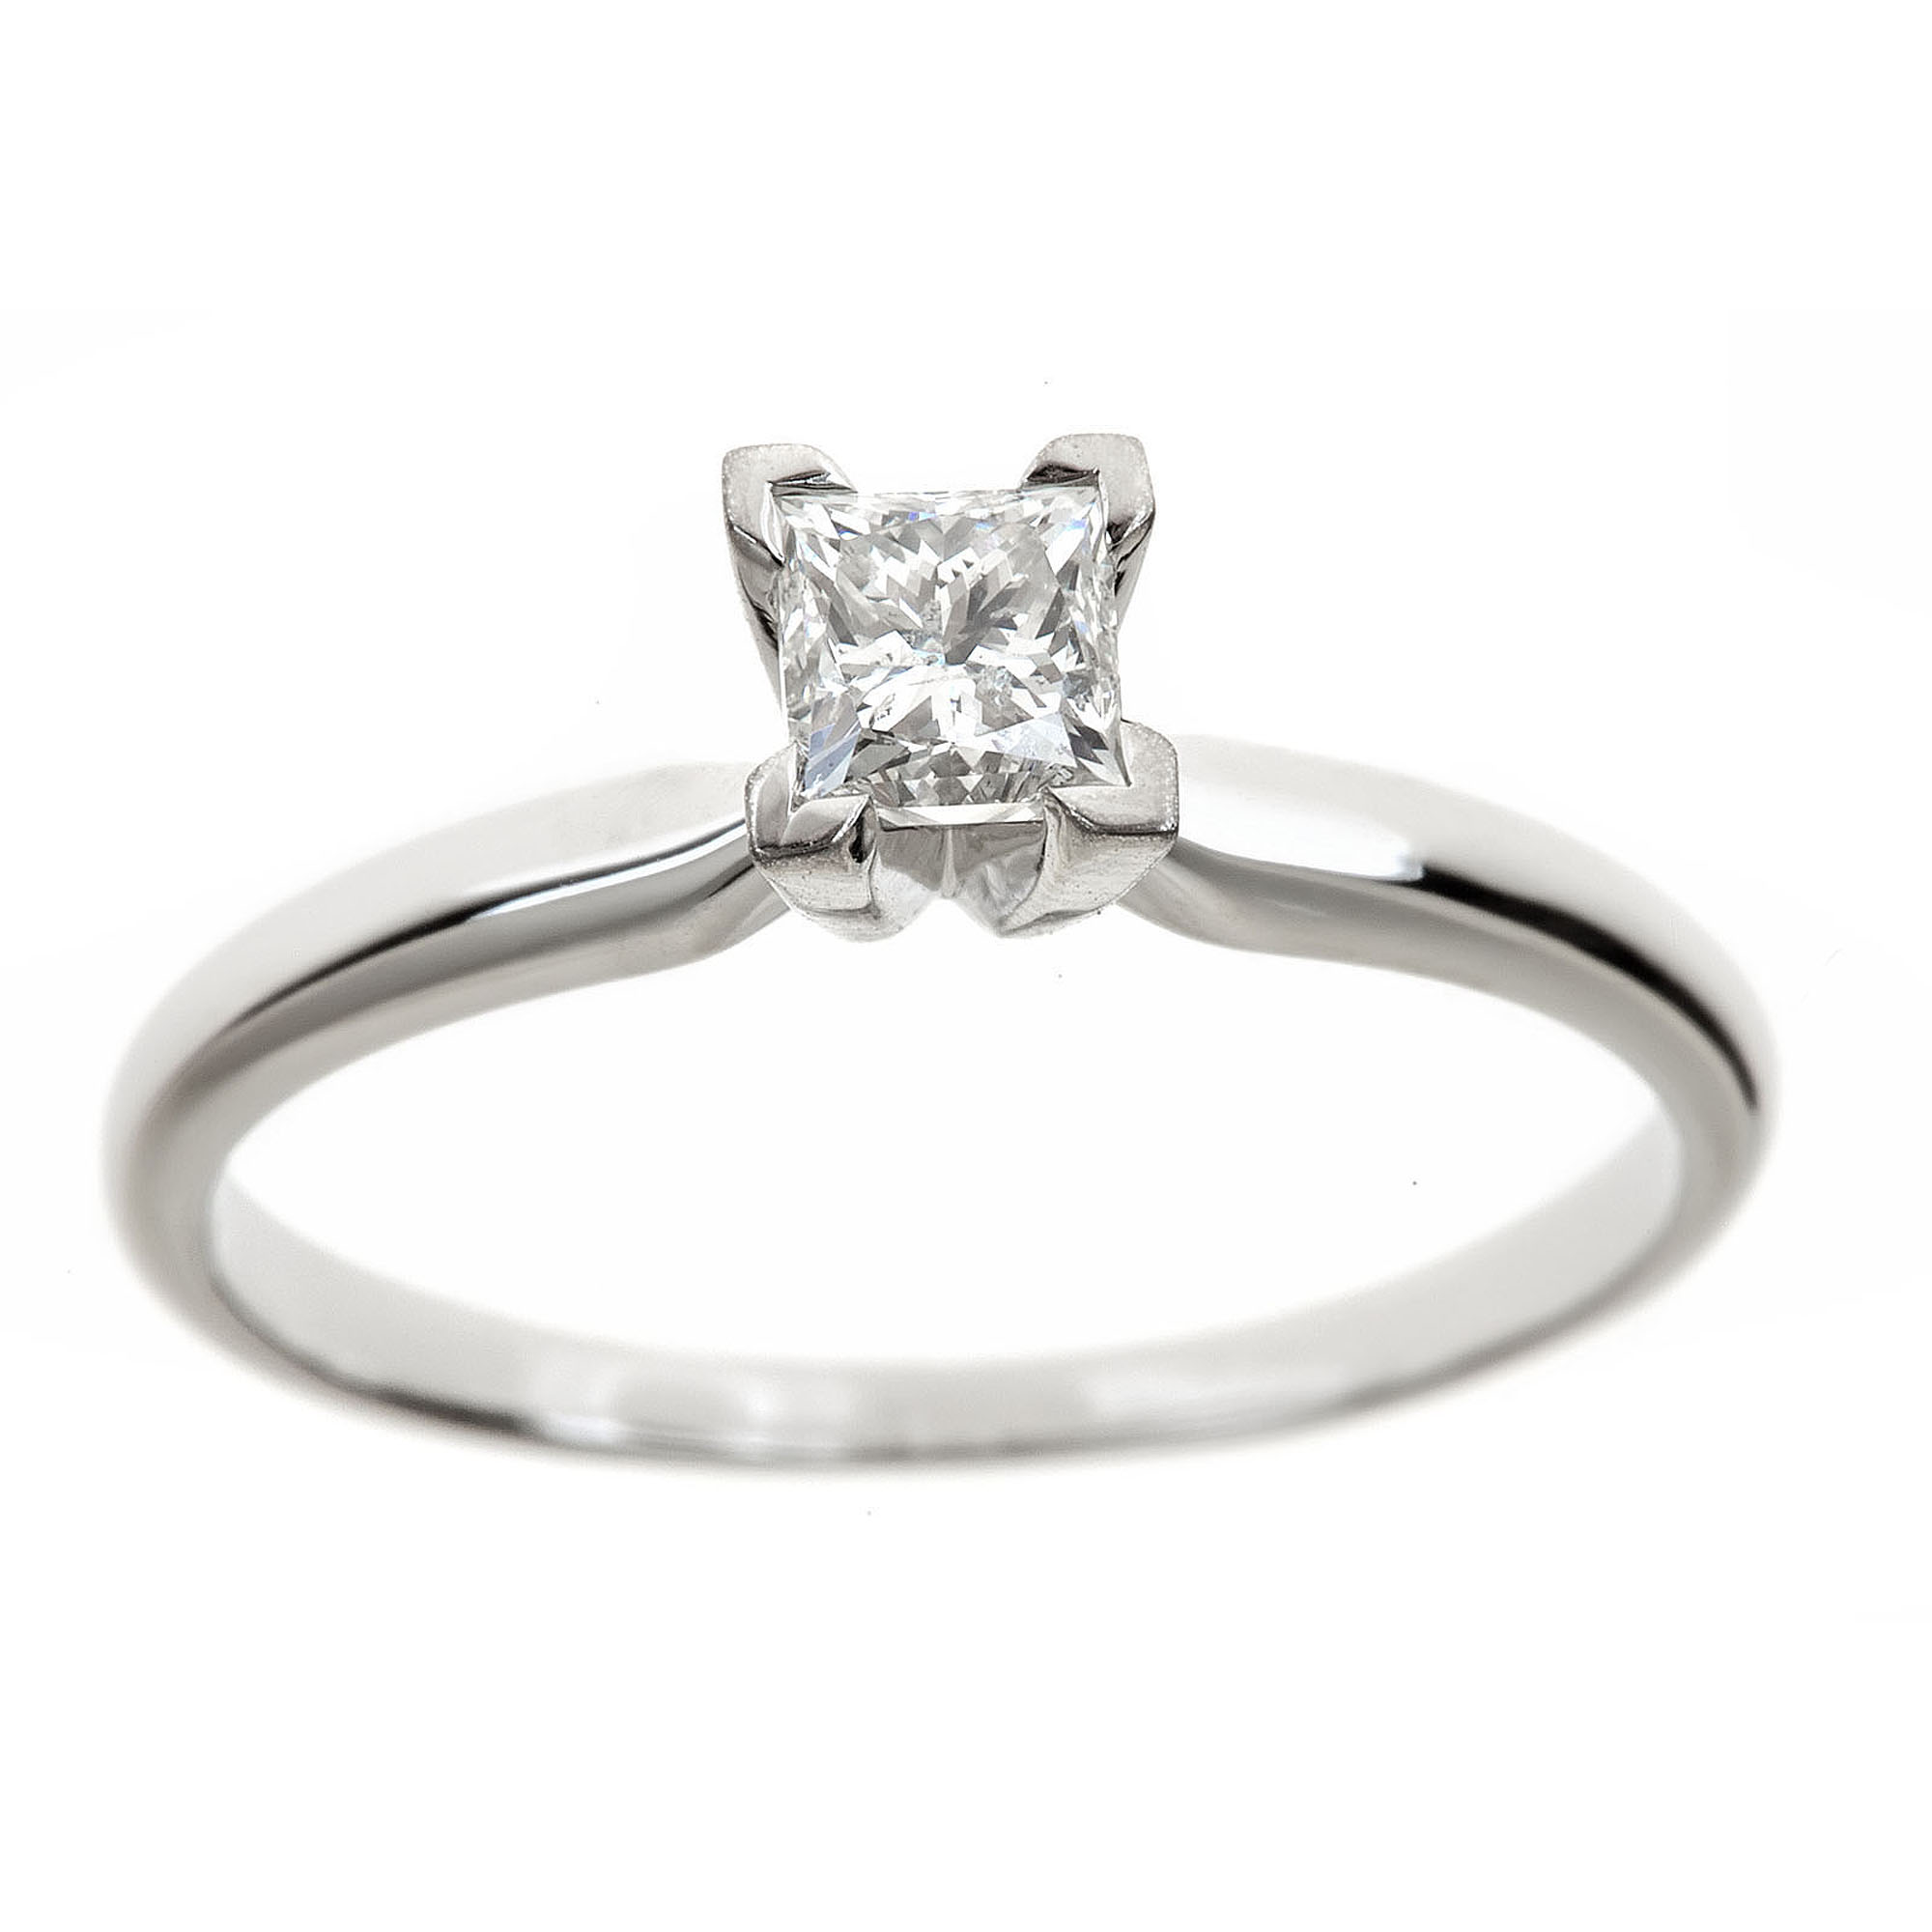 1 Carat T.W. Princess White Diamond 14kt White Gold Solitaire Ring, IGL certified by Generic